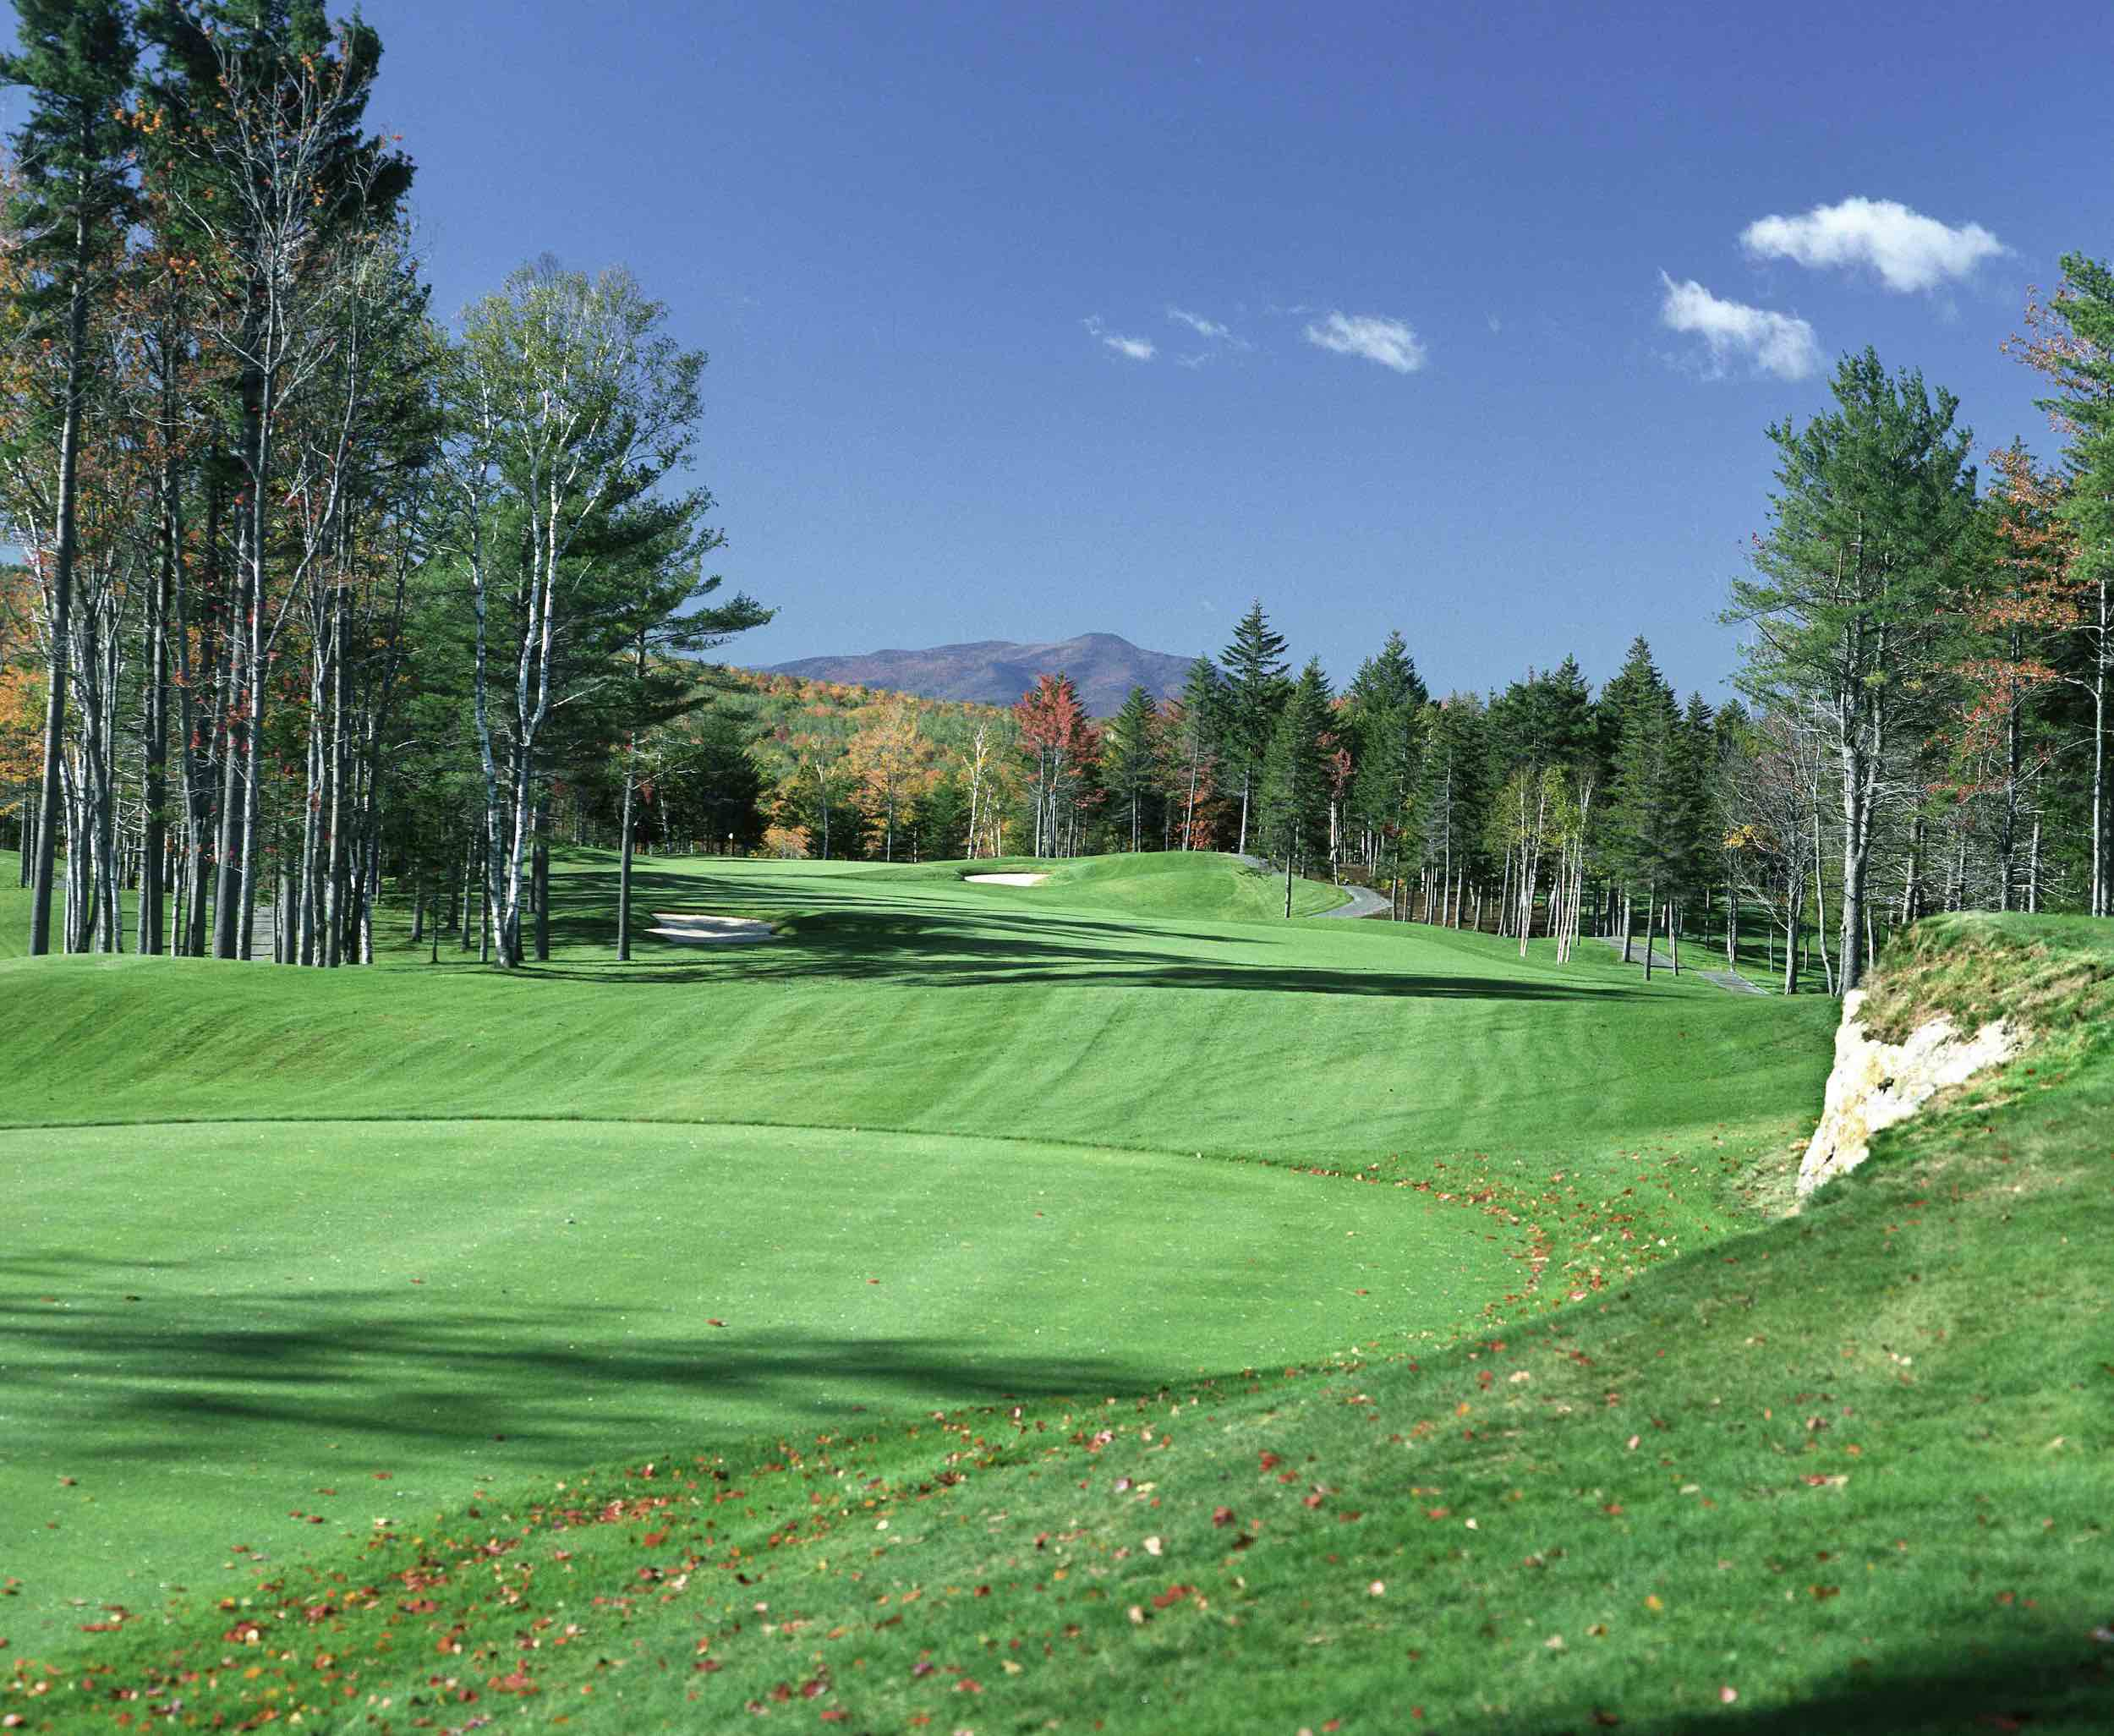 MONTCALM GOLF CLUB'S SOLAR WEATHER STATION OFFERS REAL-TIME DATA, SAFETY AND RELIABLE FORECASTS